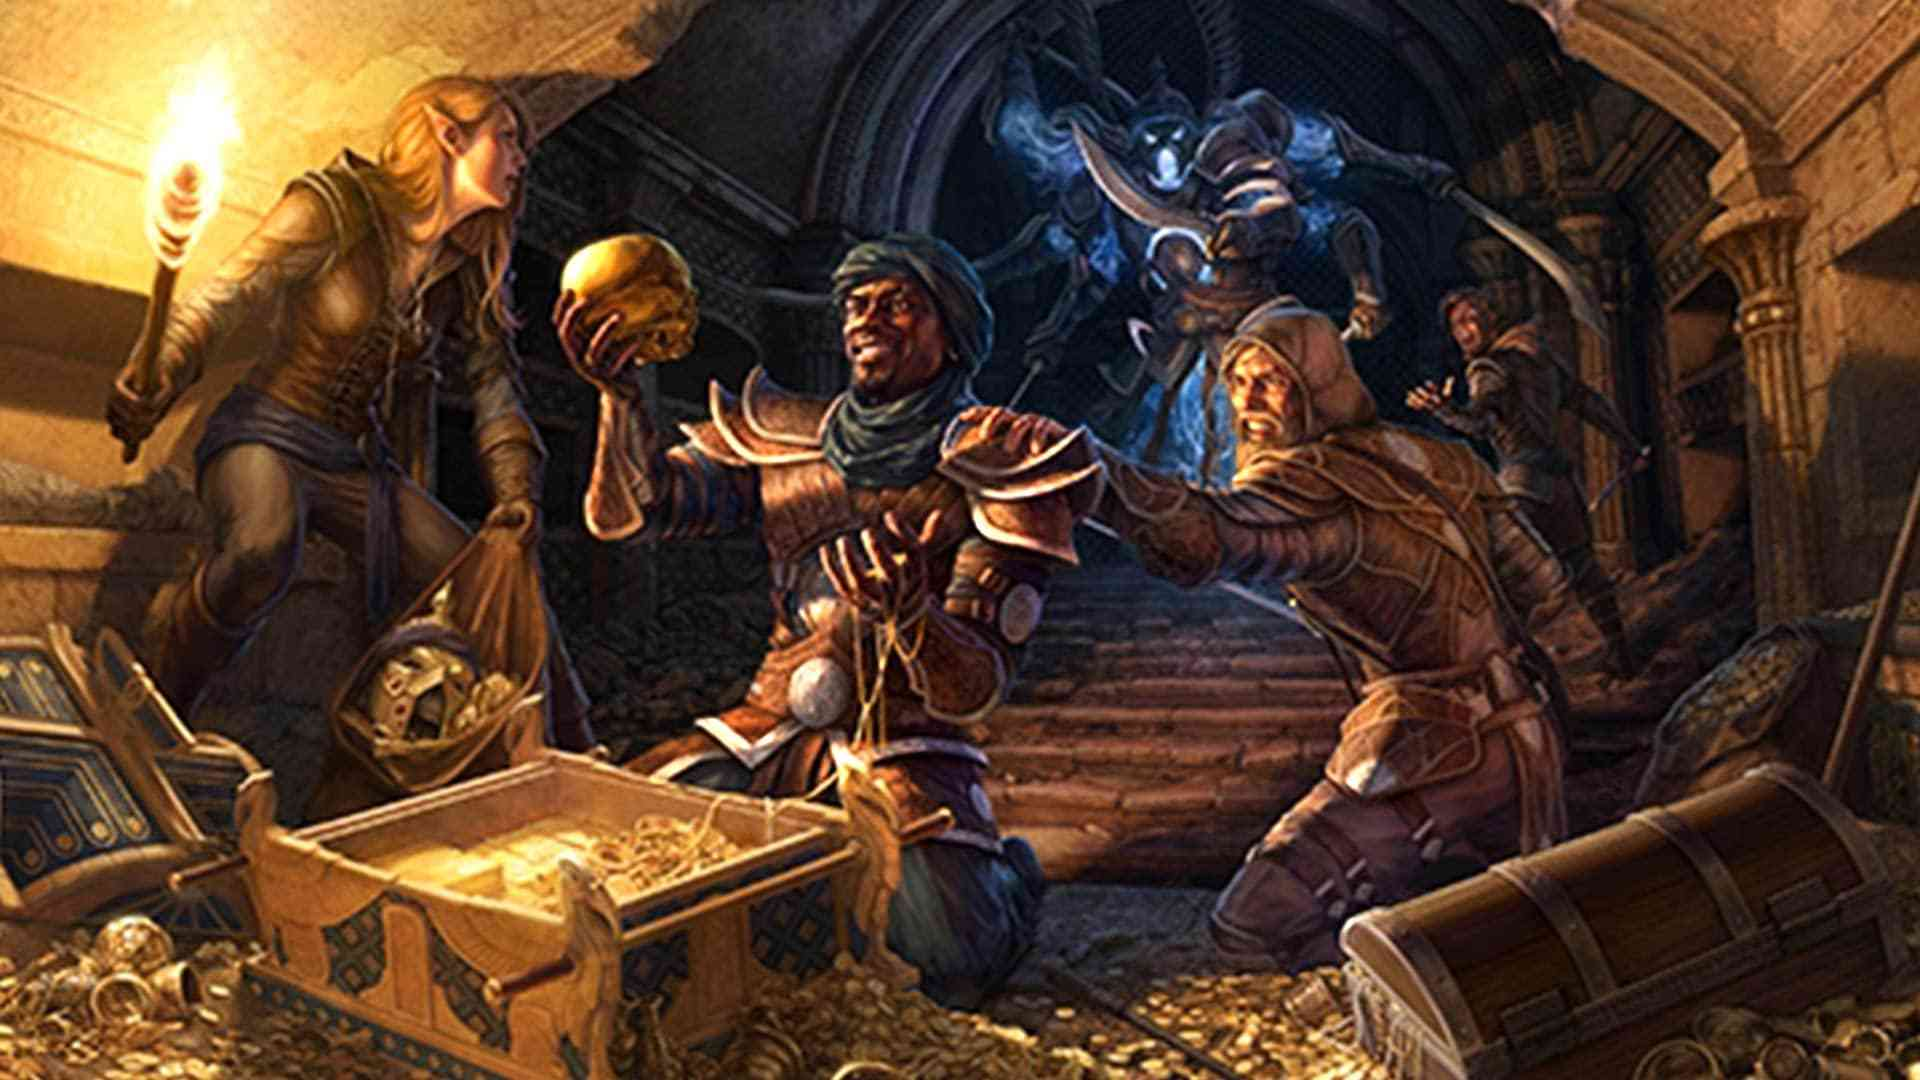 The Elder Scrolls Online Tamriel Unlimited Thieves Guild Review Pricey But Gives ESO Legs